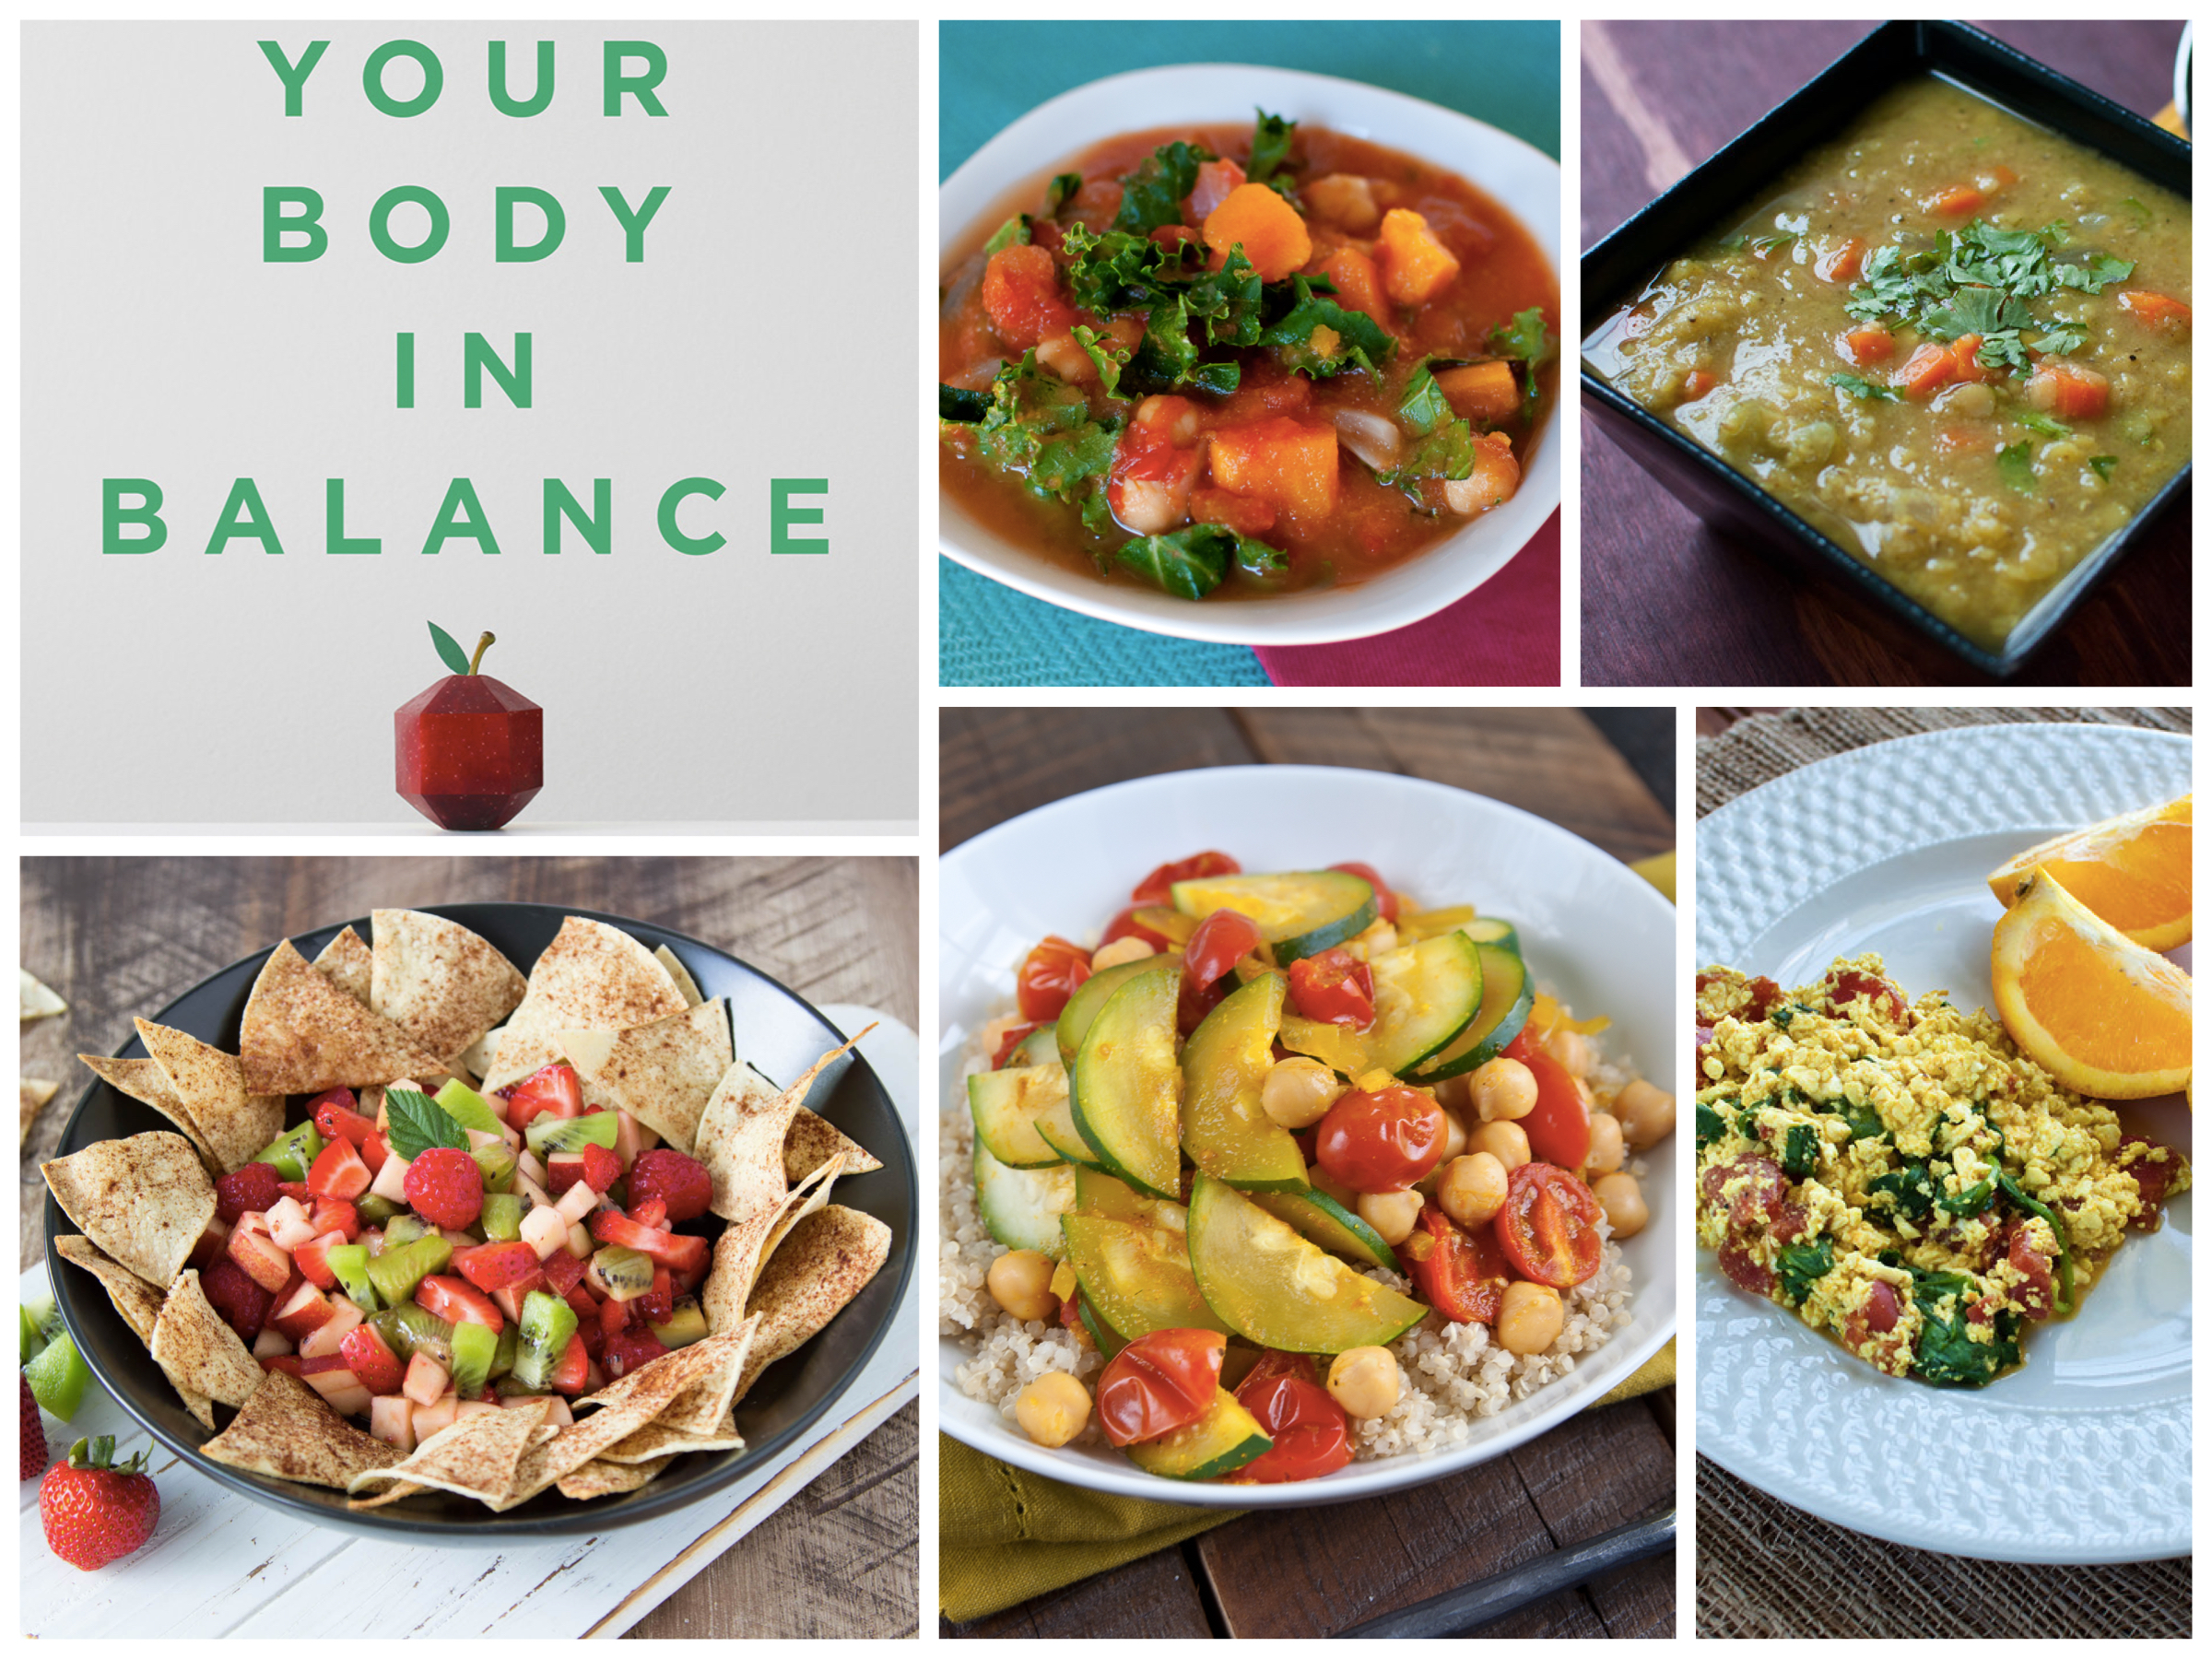 Is Your Body in Balance? Eat this at breakfast